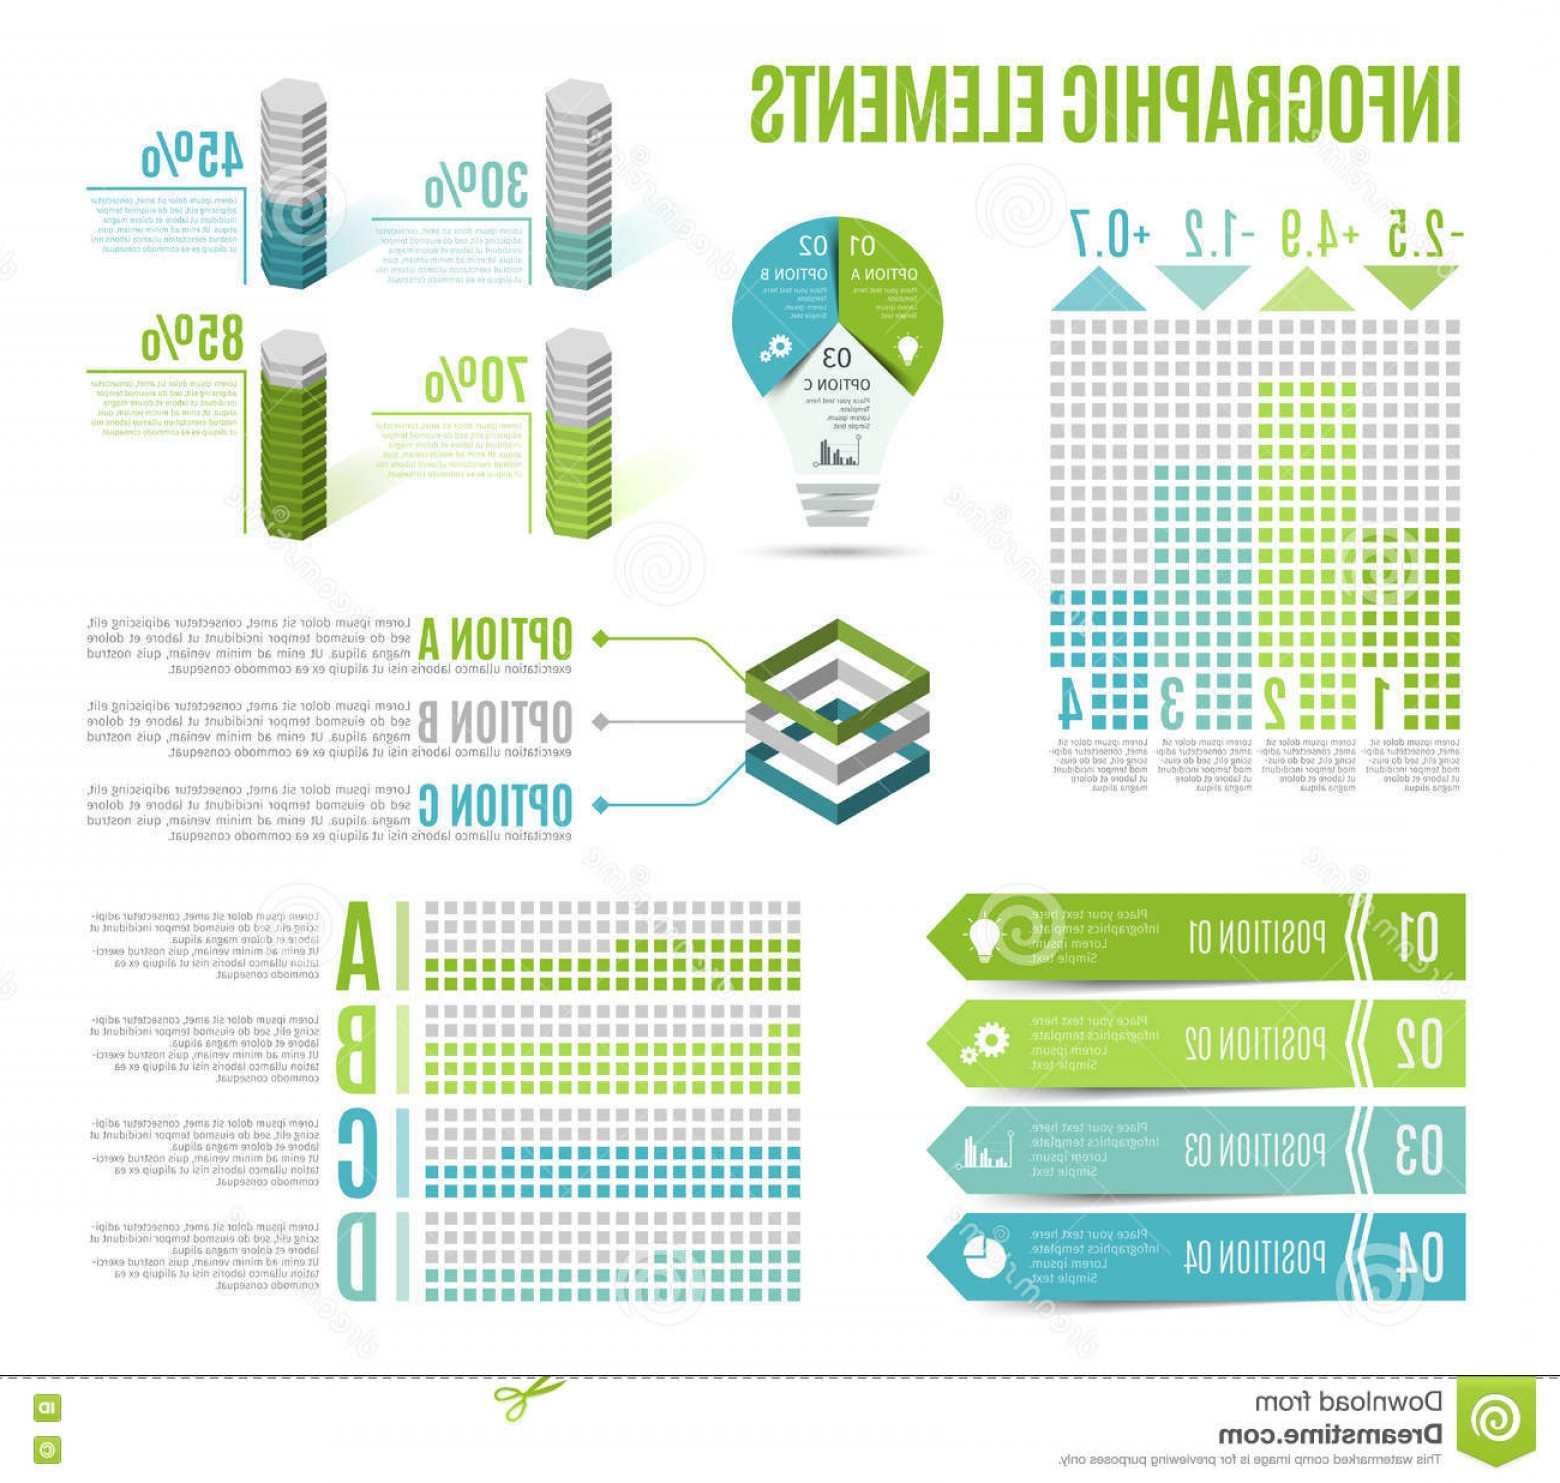 Graphing Vectors 2 1: Stock Illustration Set Business Infographic Elements Template Presentation Chart Graph Vector Illustration Image